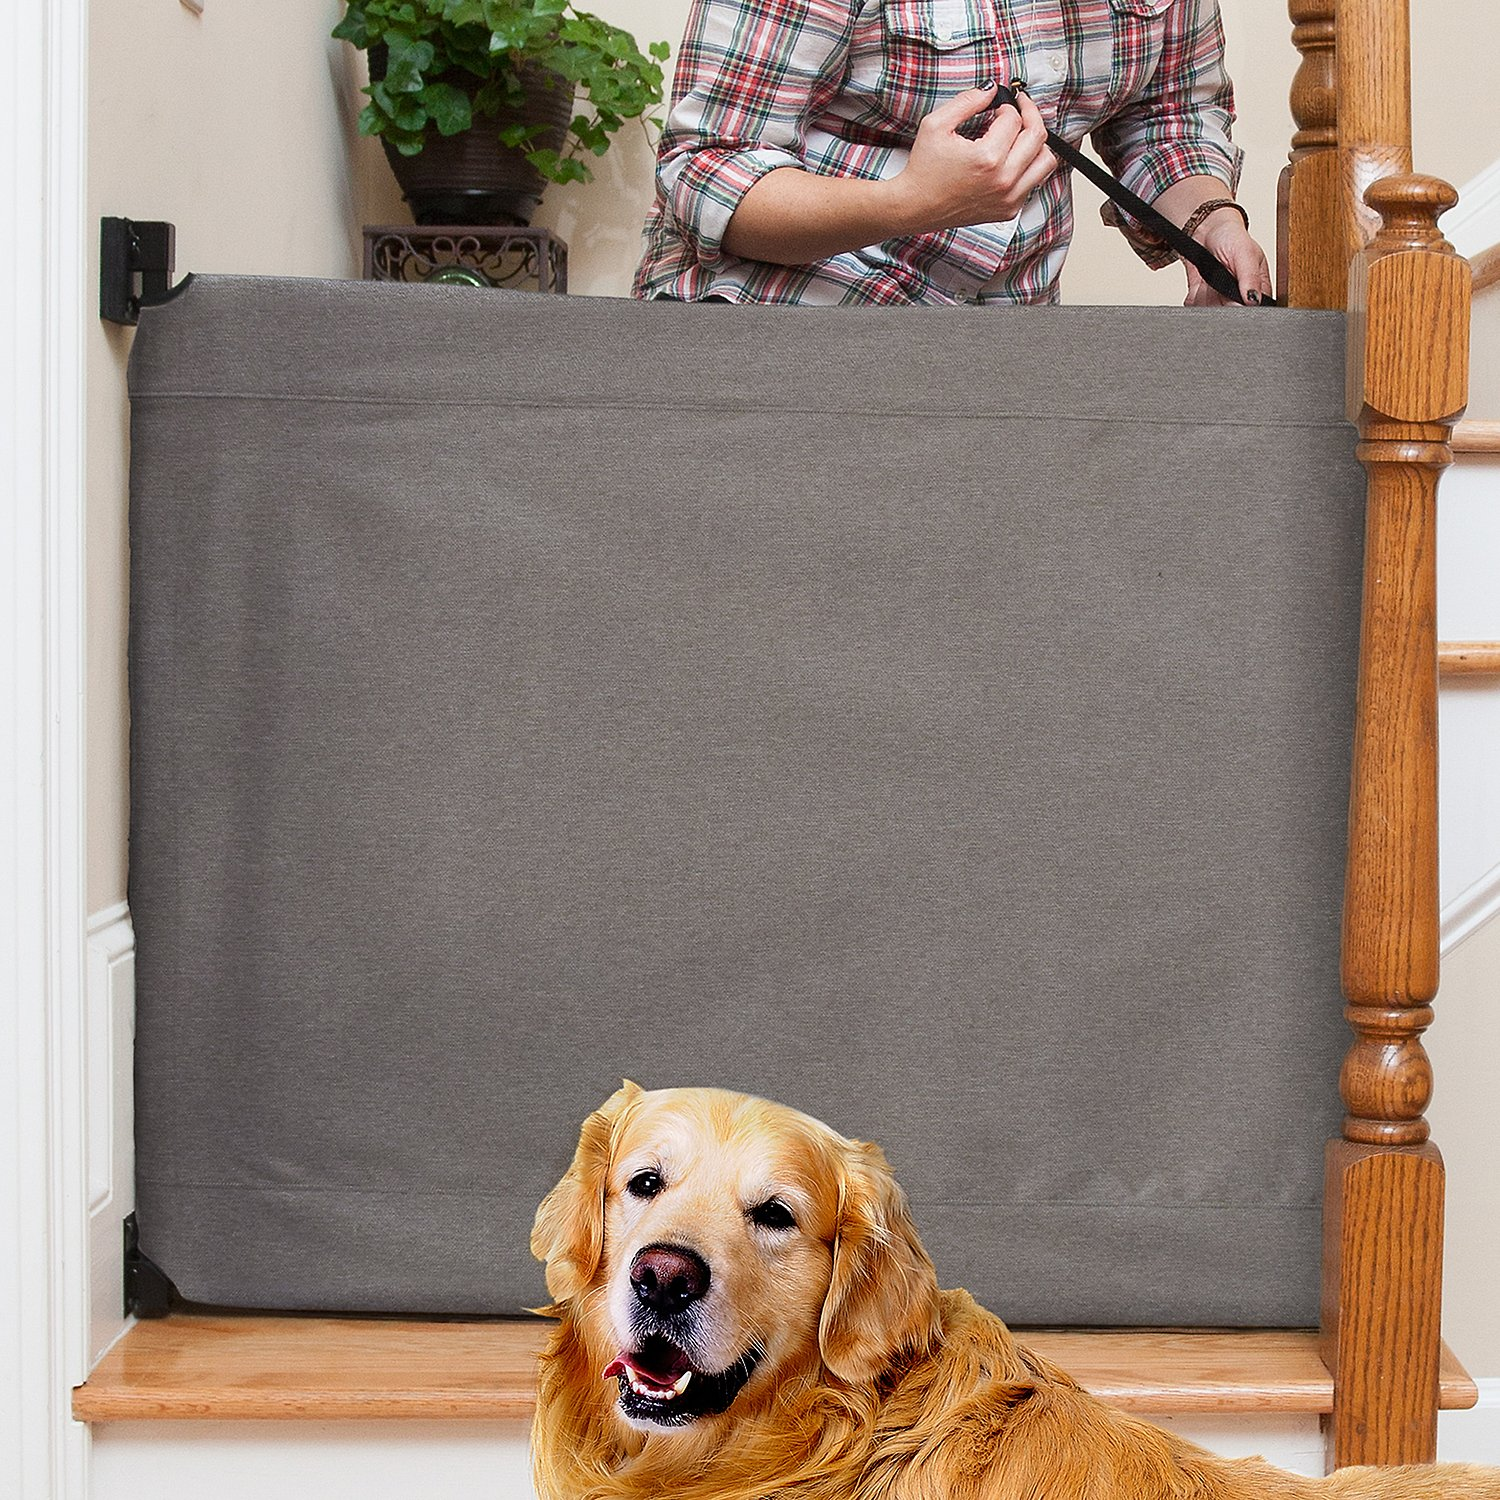 The Stair Barrier Wall To Banister Indoor Fabric Pet Gate